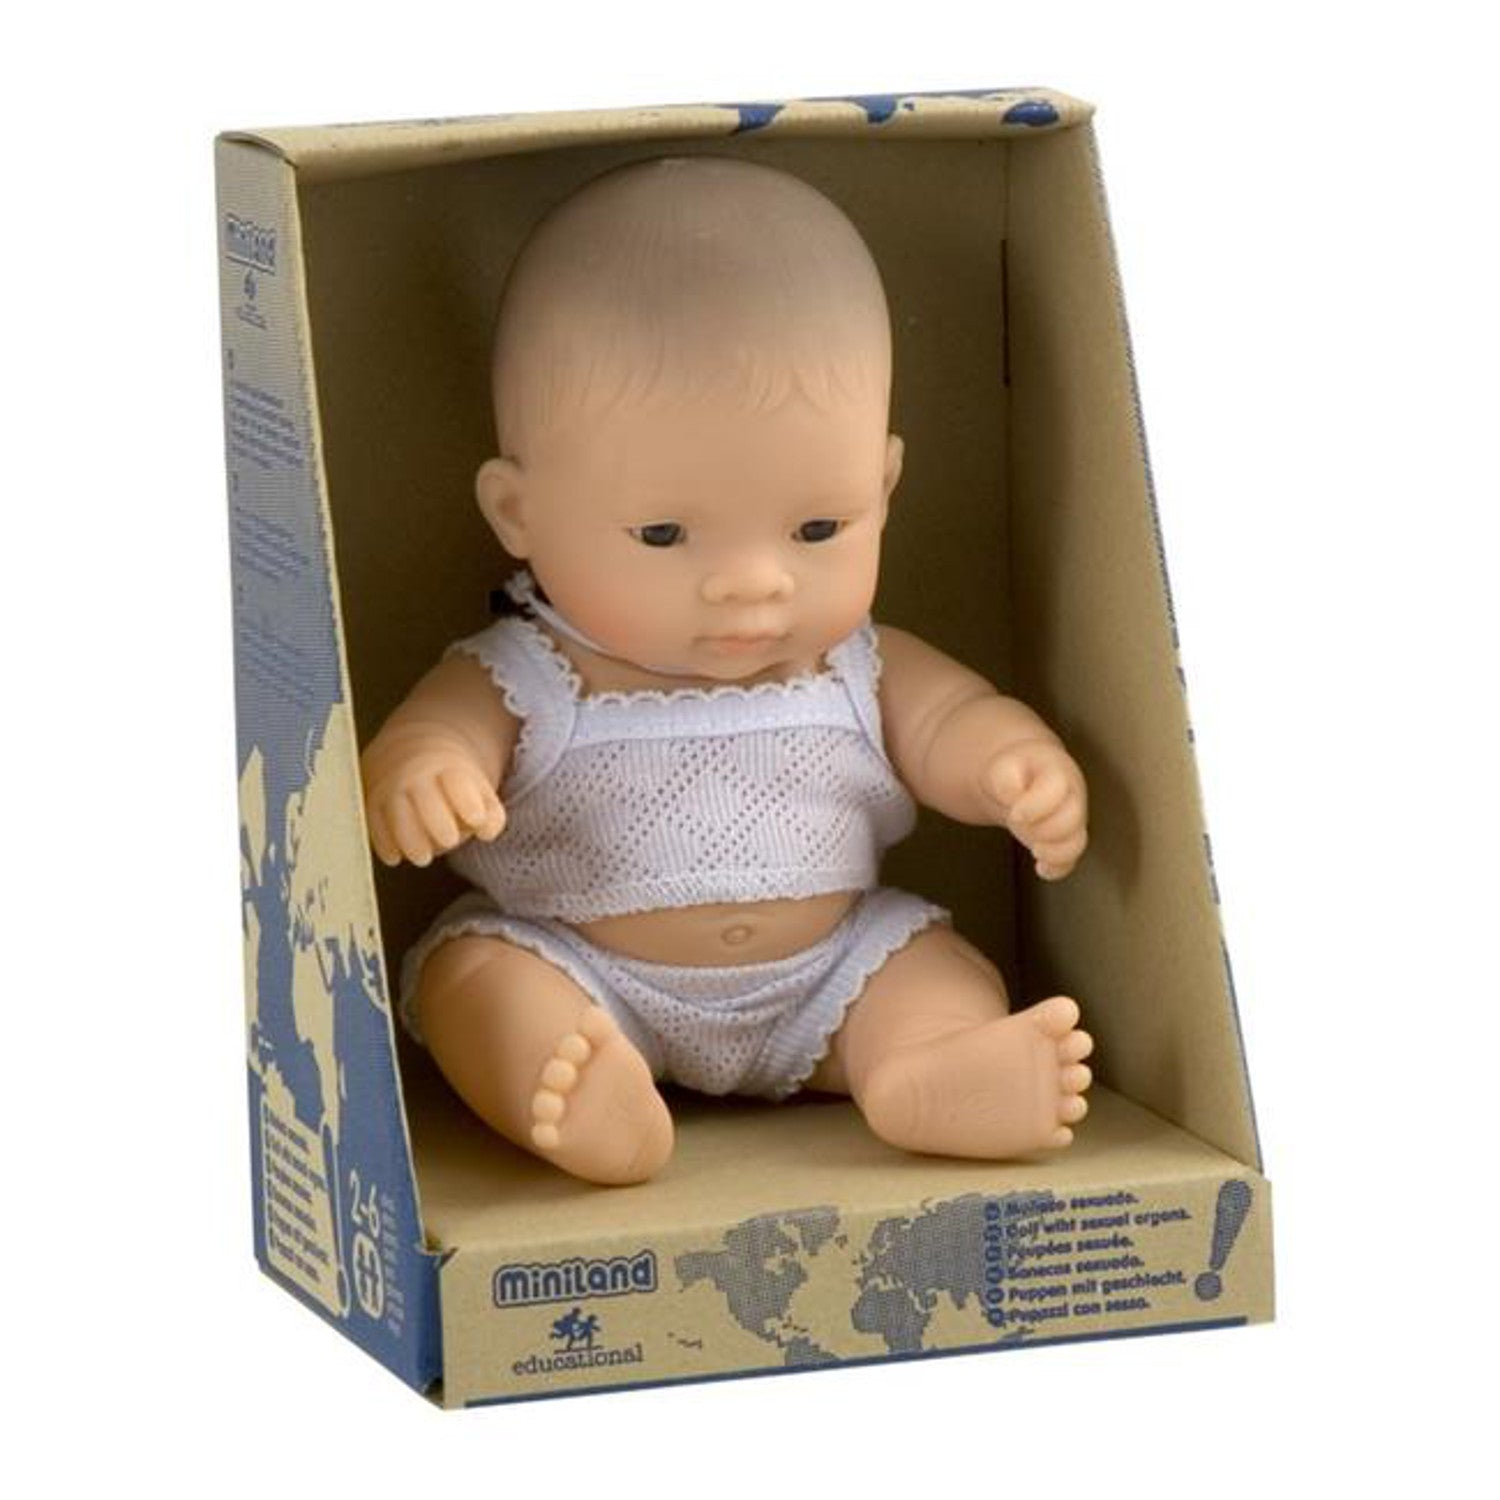 Miniland Baby Doll 21cm Asian Boy